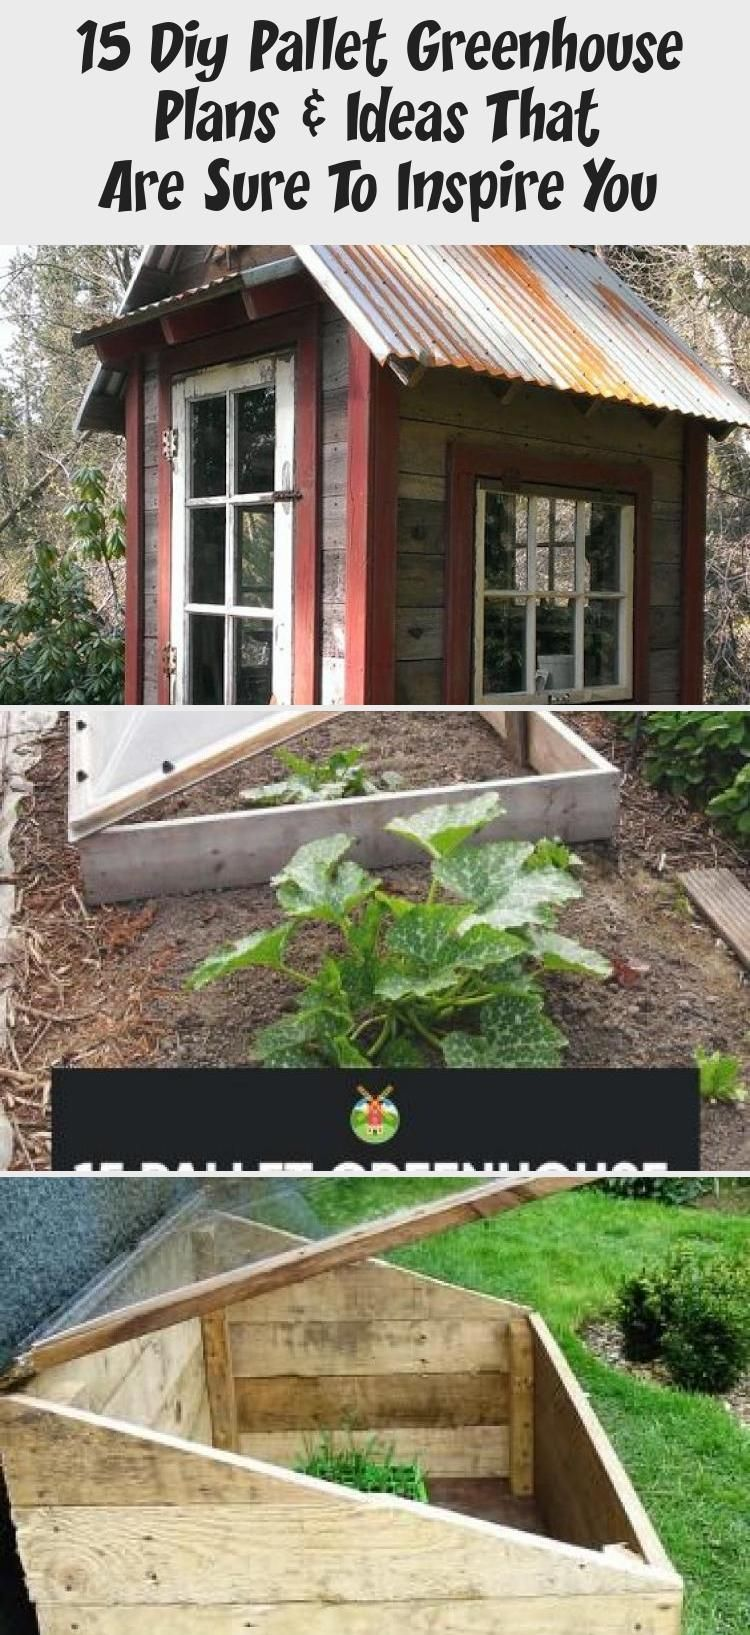 15 Diy Pallet Greenhouse Plans & Ideas That Are Sure To